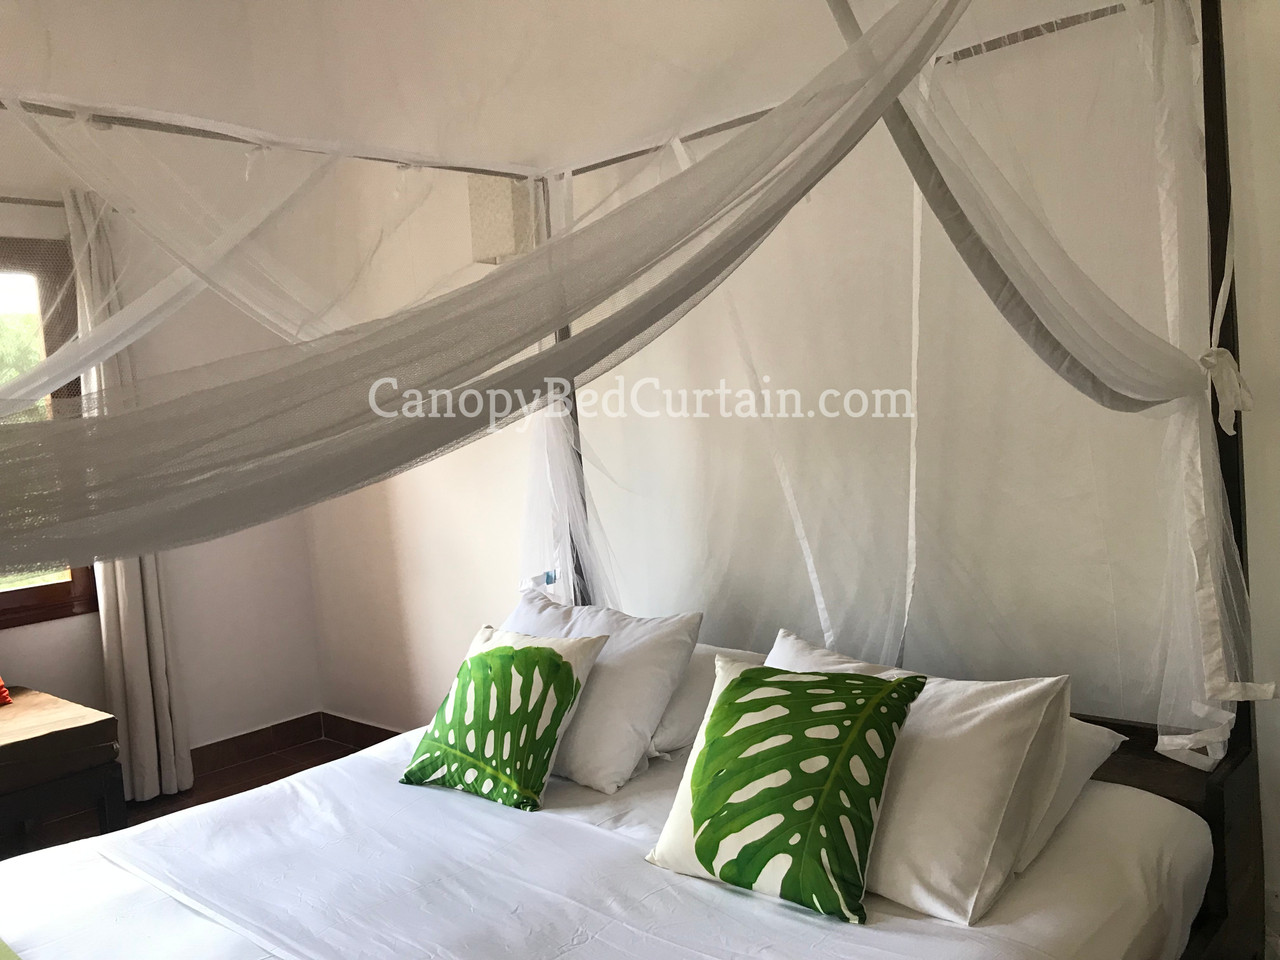 Canopy Bed Curtain. Queen.